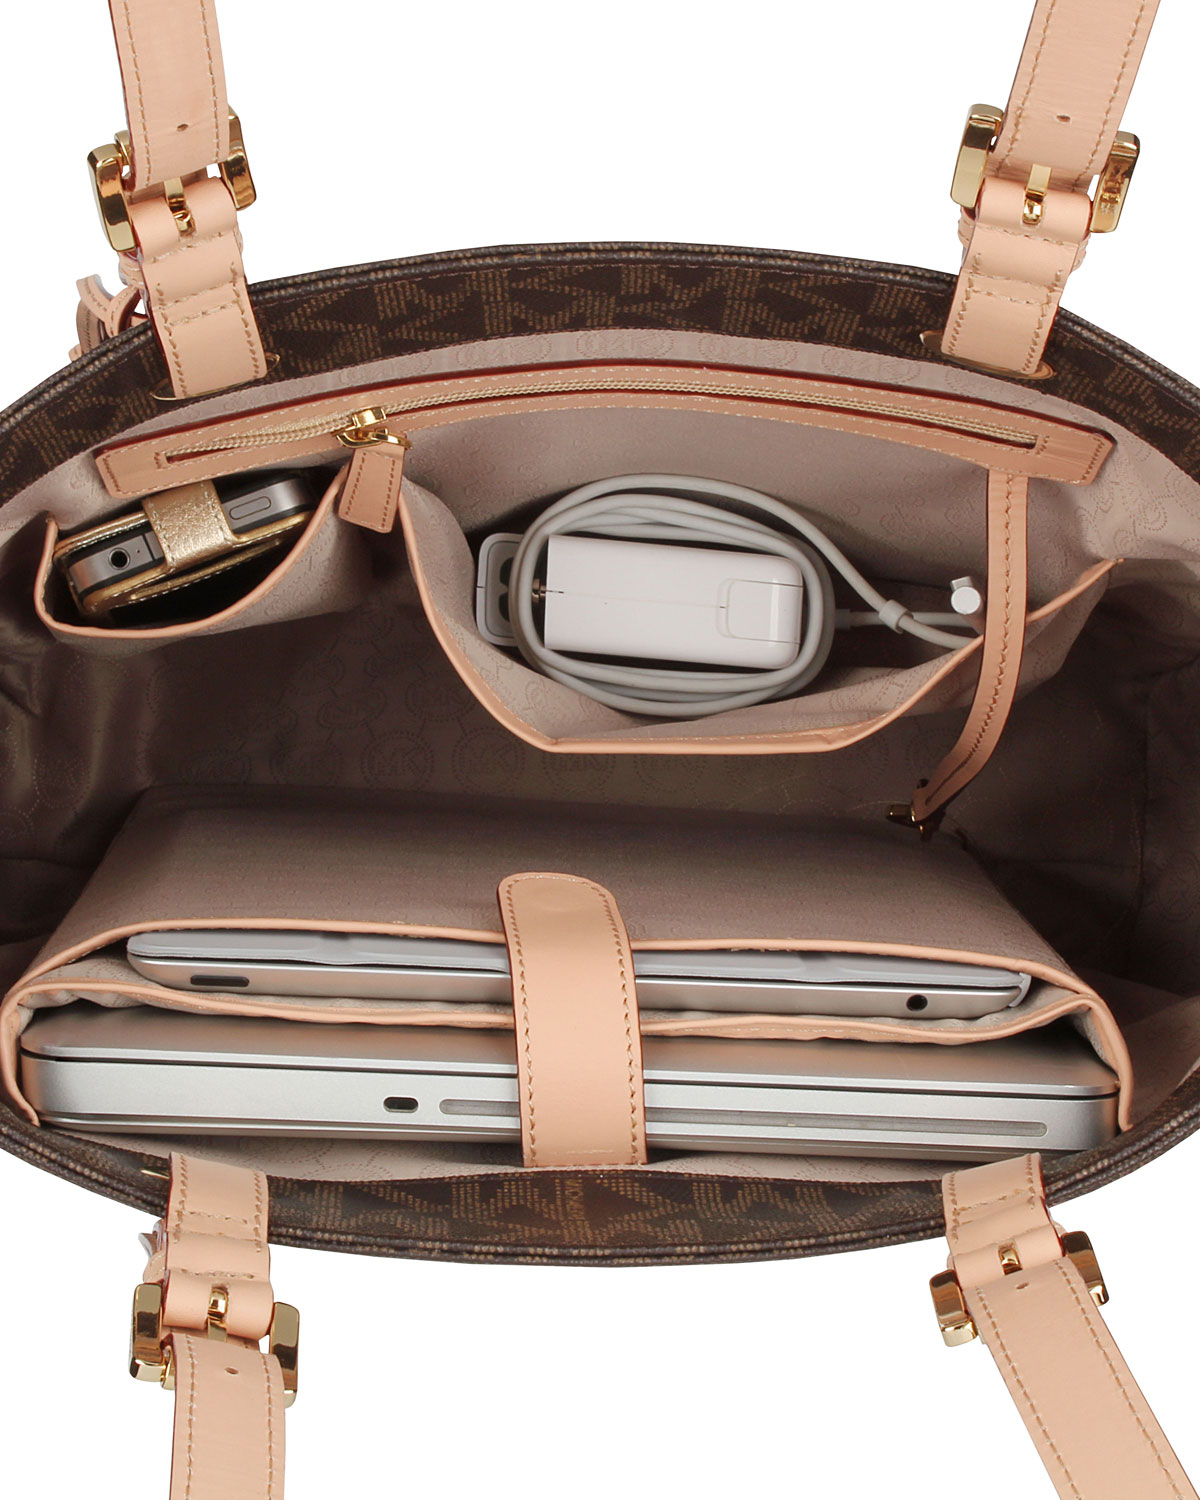 e448f9c568 ... coupon code for lyst michael kors tote for macbook small in brown 66569  be299